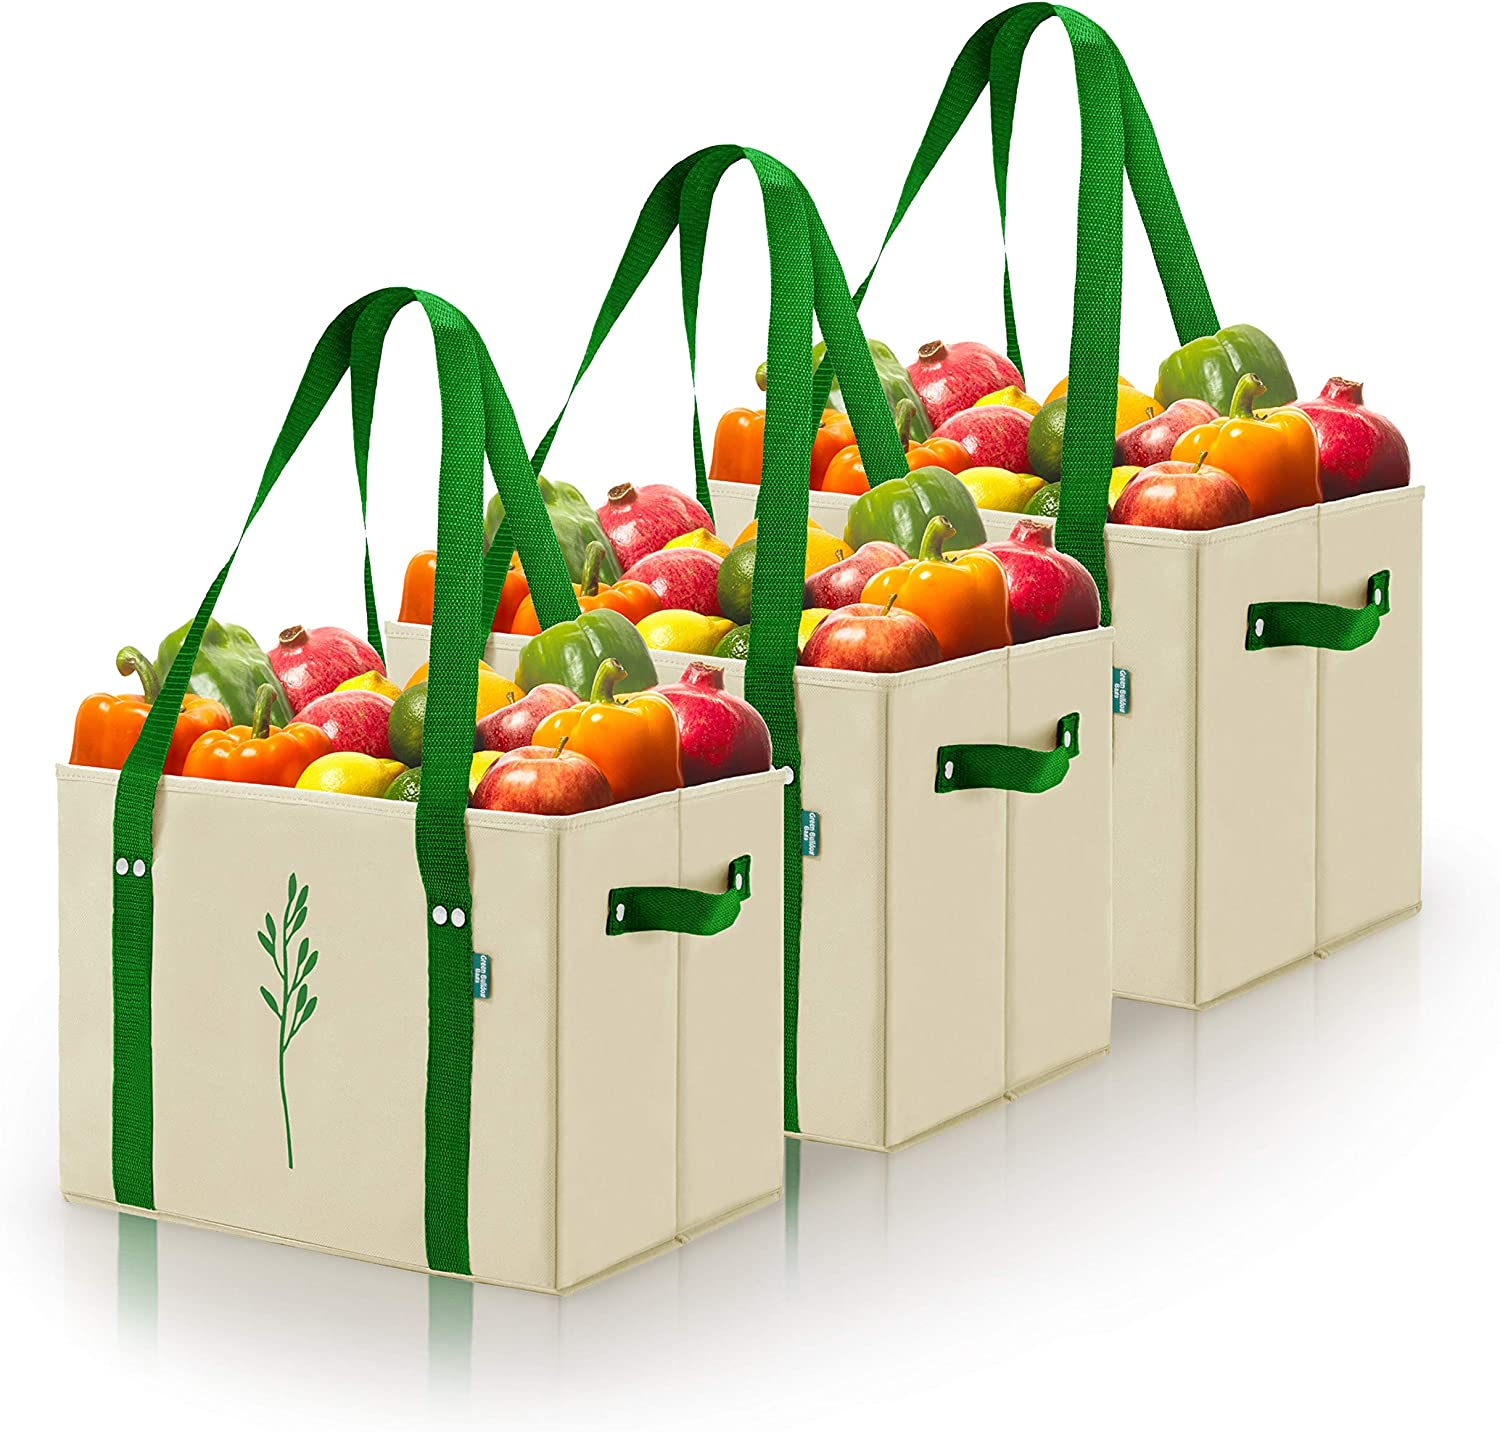 Heavy Duty Reusable Grocery Bags. Spillover Proof and Collapsible Shopping Box Bags with Fold Up Reinforced Bottom. Long and Short Handles. By Green Bulldog Bags. (Large - Taupe Set of 3)